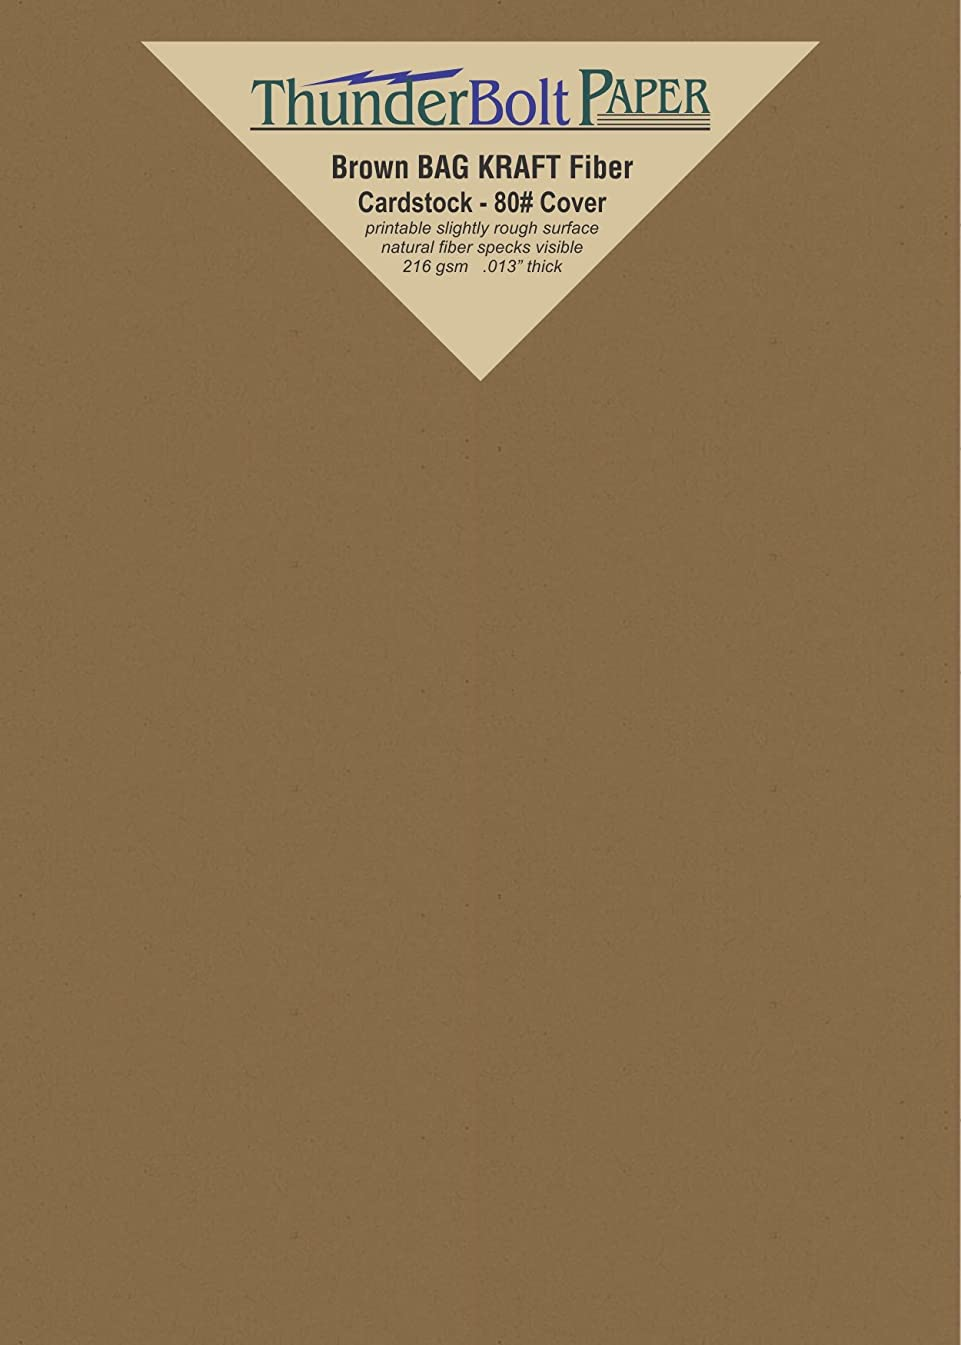 50 Brown Bag Colored Cardstock Paper Sheets - 5.5 X 8.5 inches Half Letter | Statement Size – 80 lb/Pound Cover|Card Weight 216 GSM - Natural Kraft Fiber with Darker Specks - Slightly Rough Finish